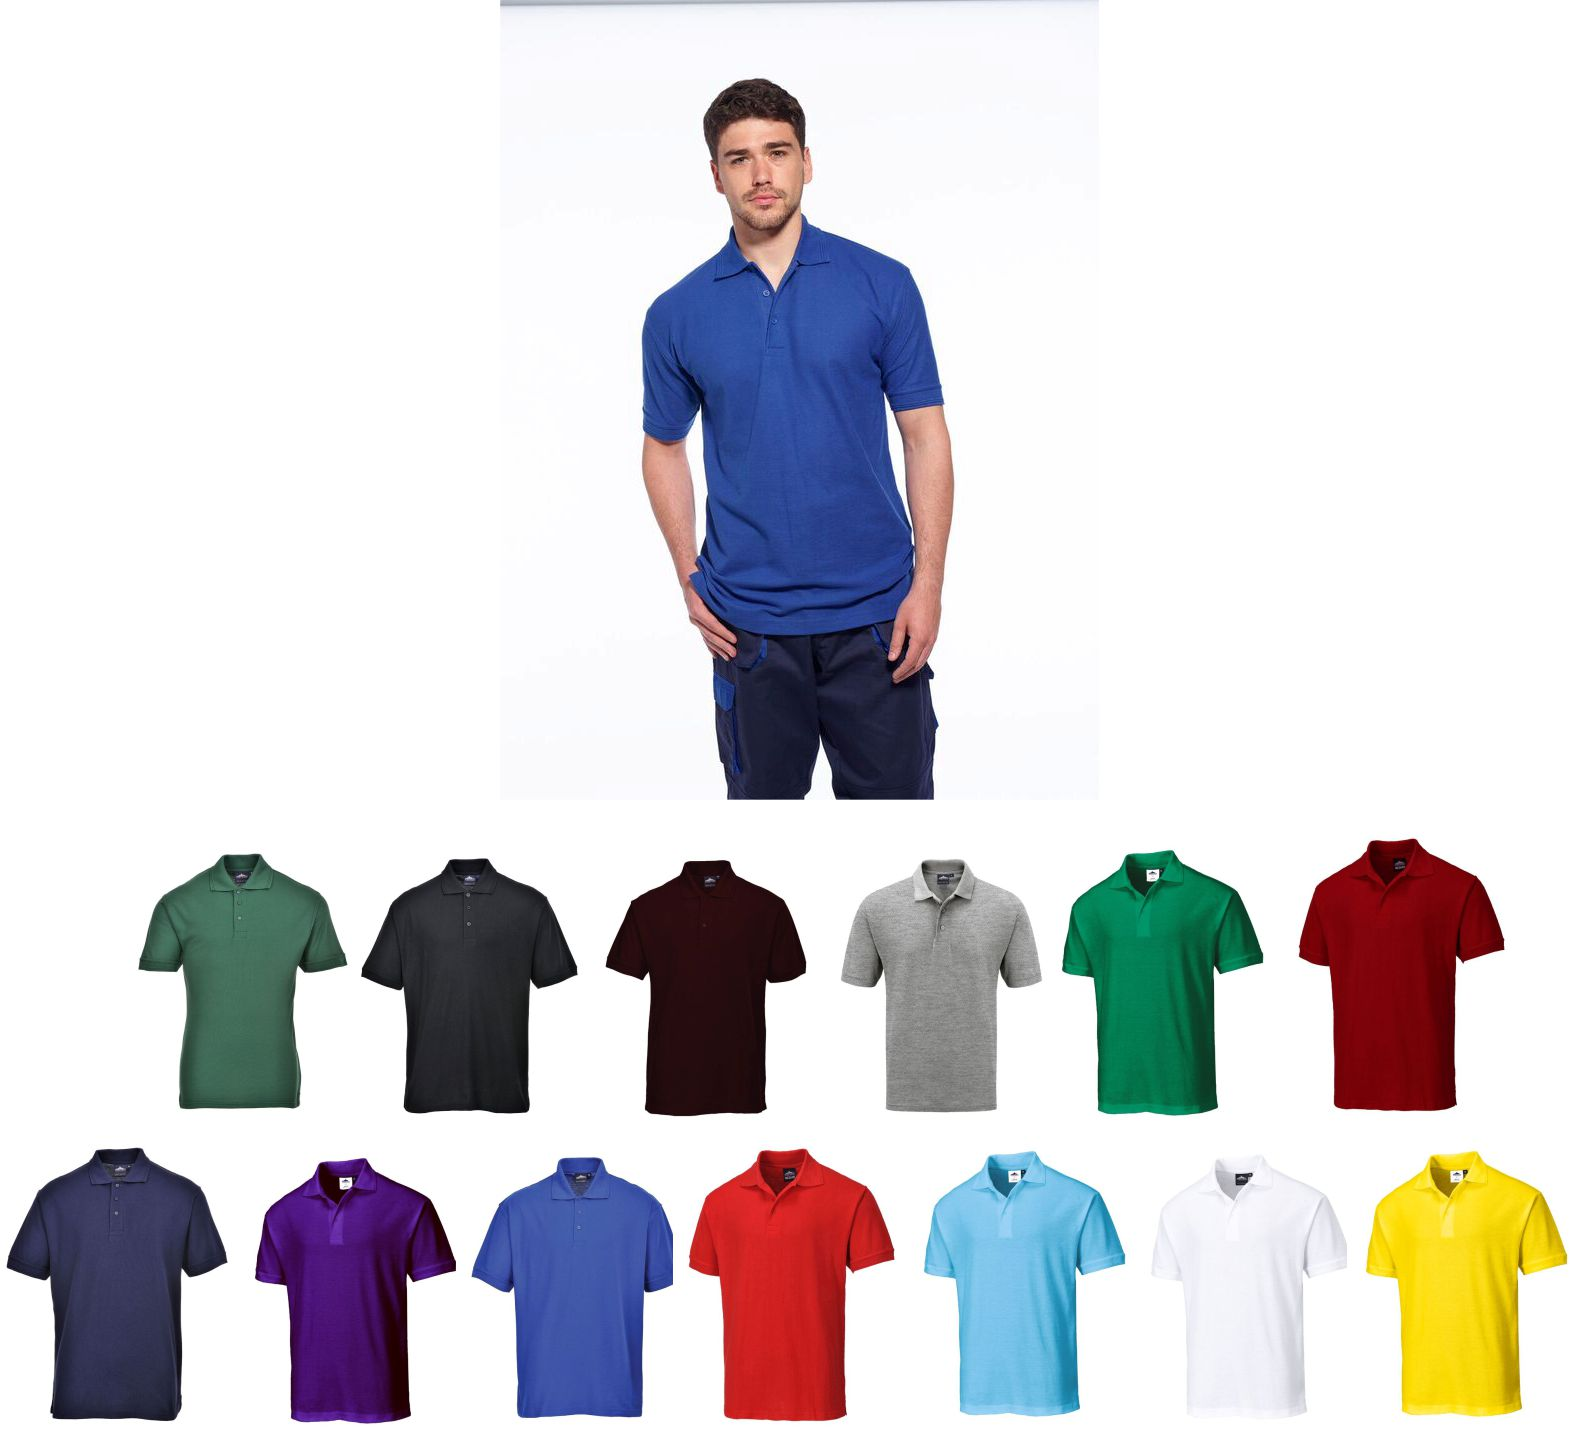 B210 Portwest Naples poly/cotton Polo Shirt